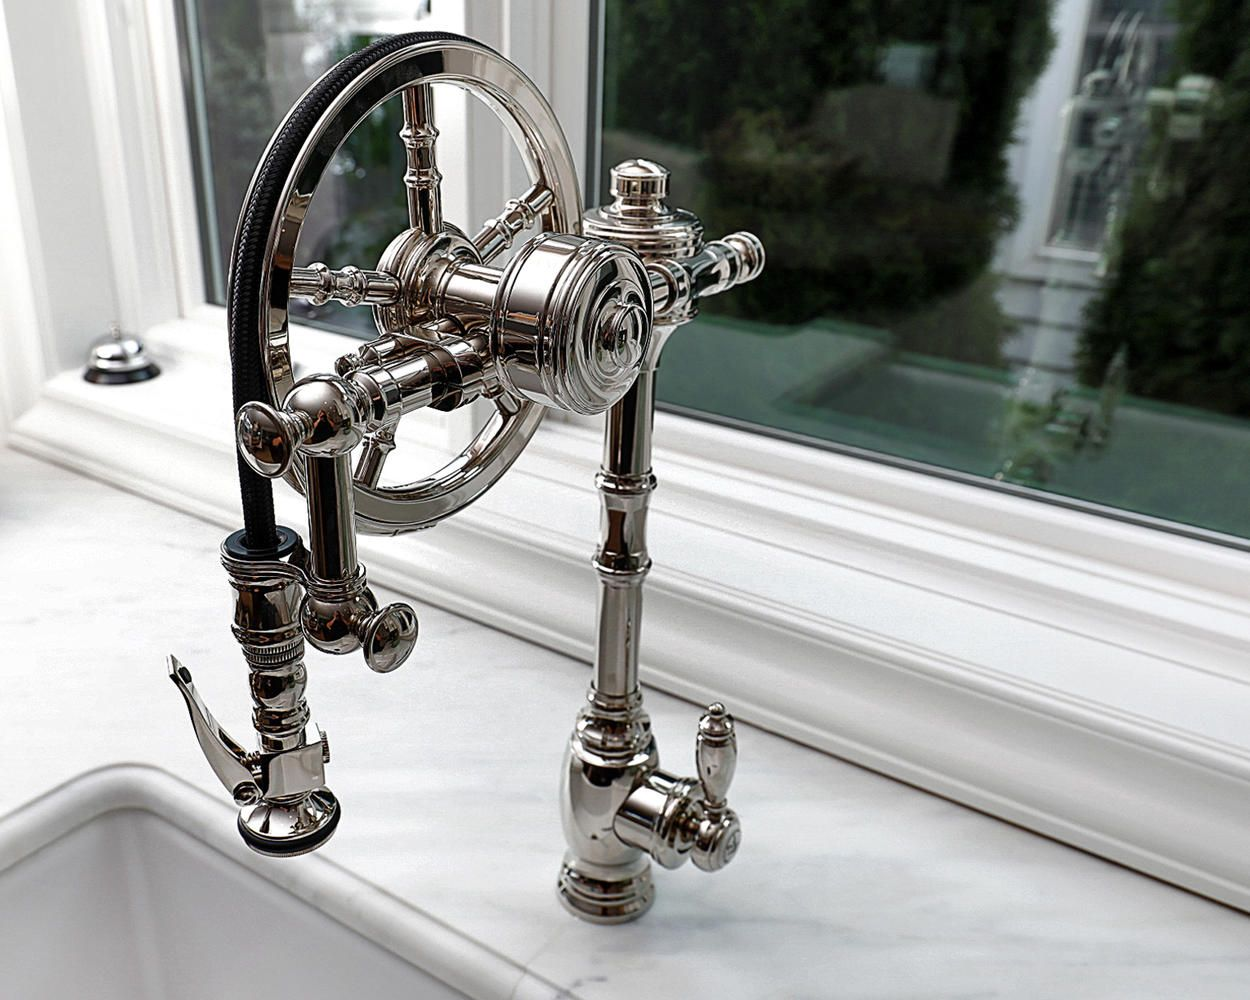 Waterstone Wheel Pulldown In Polished Nickel Kitchen Design By Rene Costabile Of Design Line Kitchens Sea Girt Nj